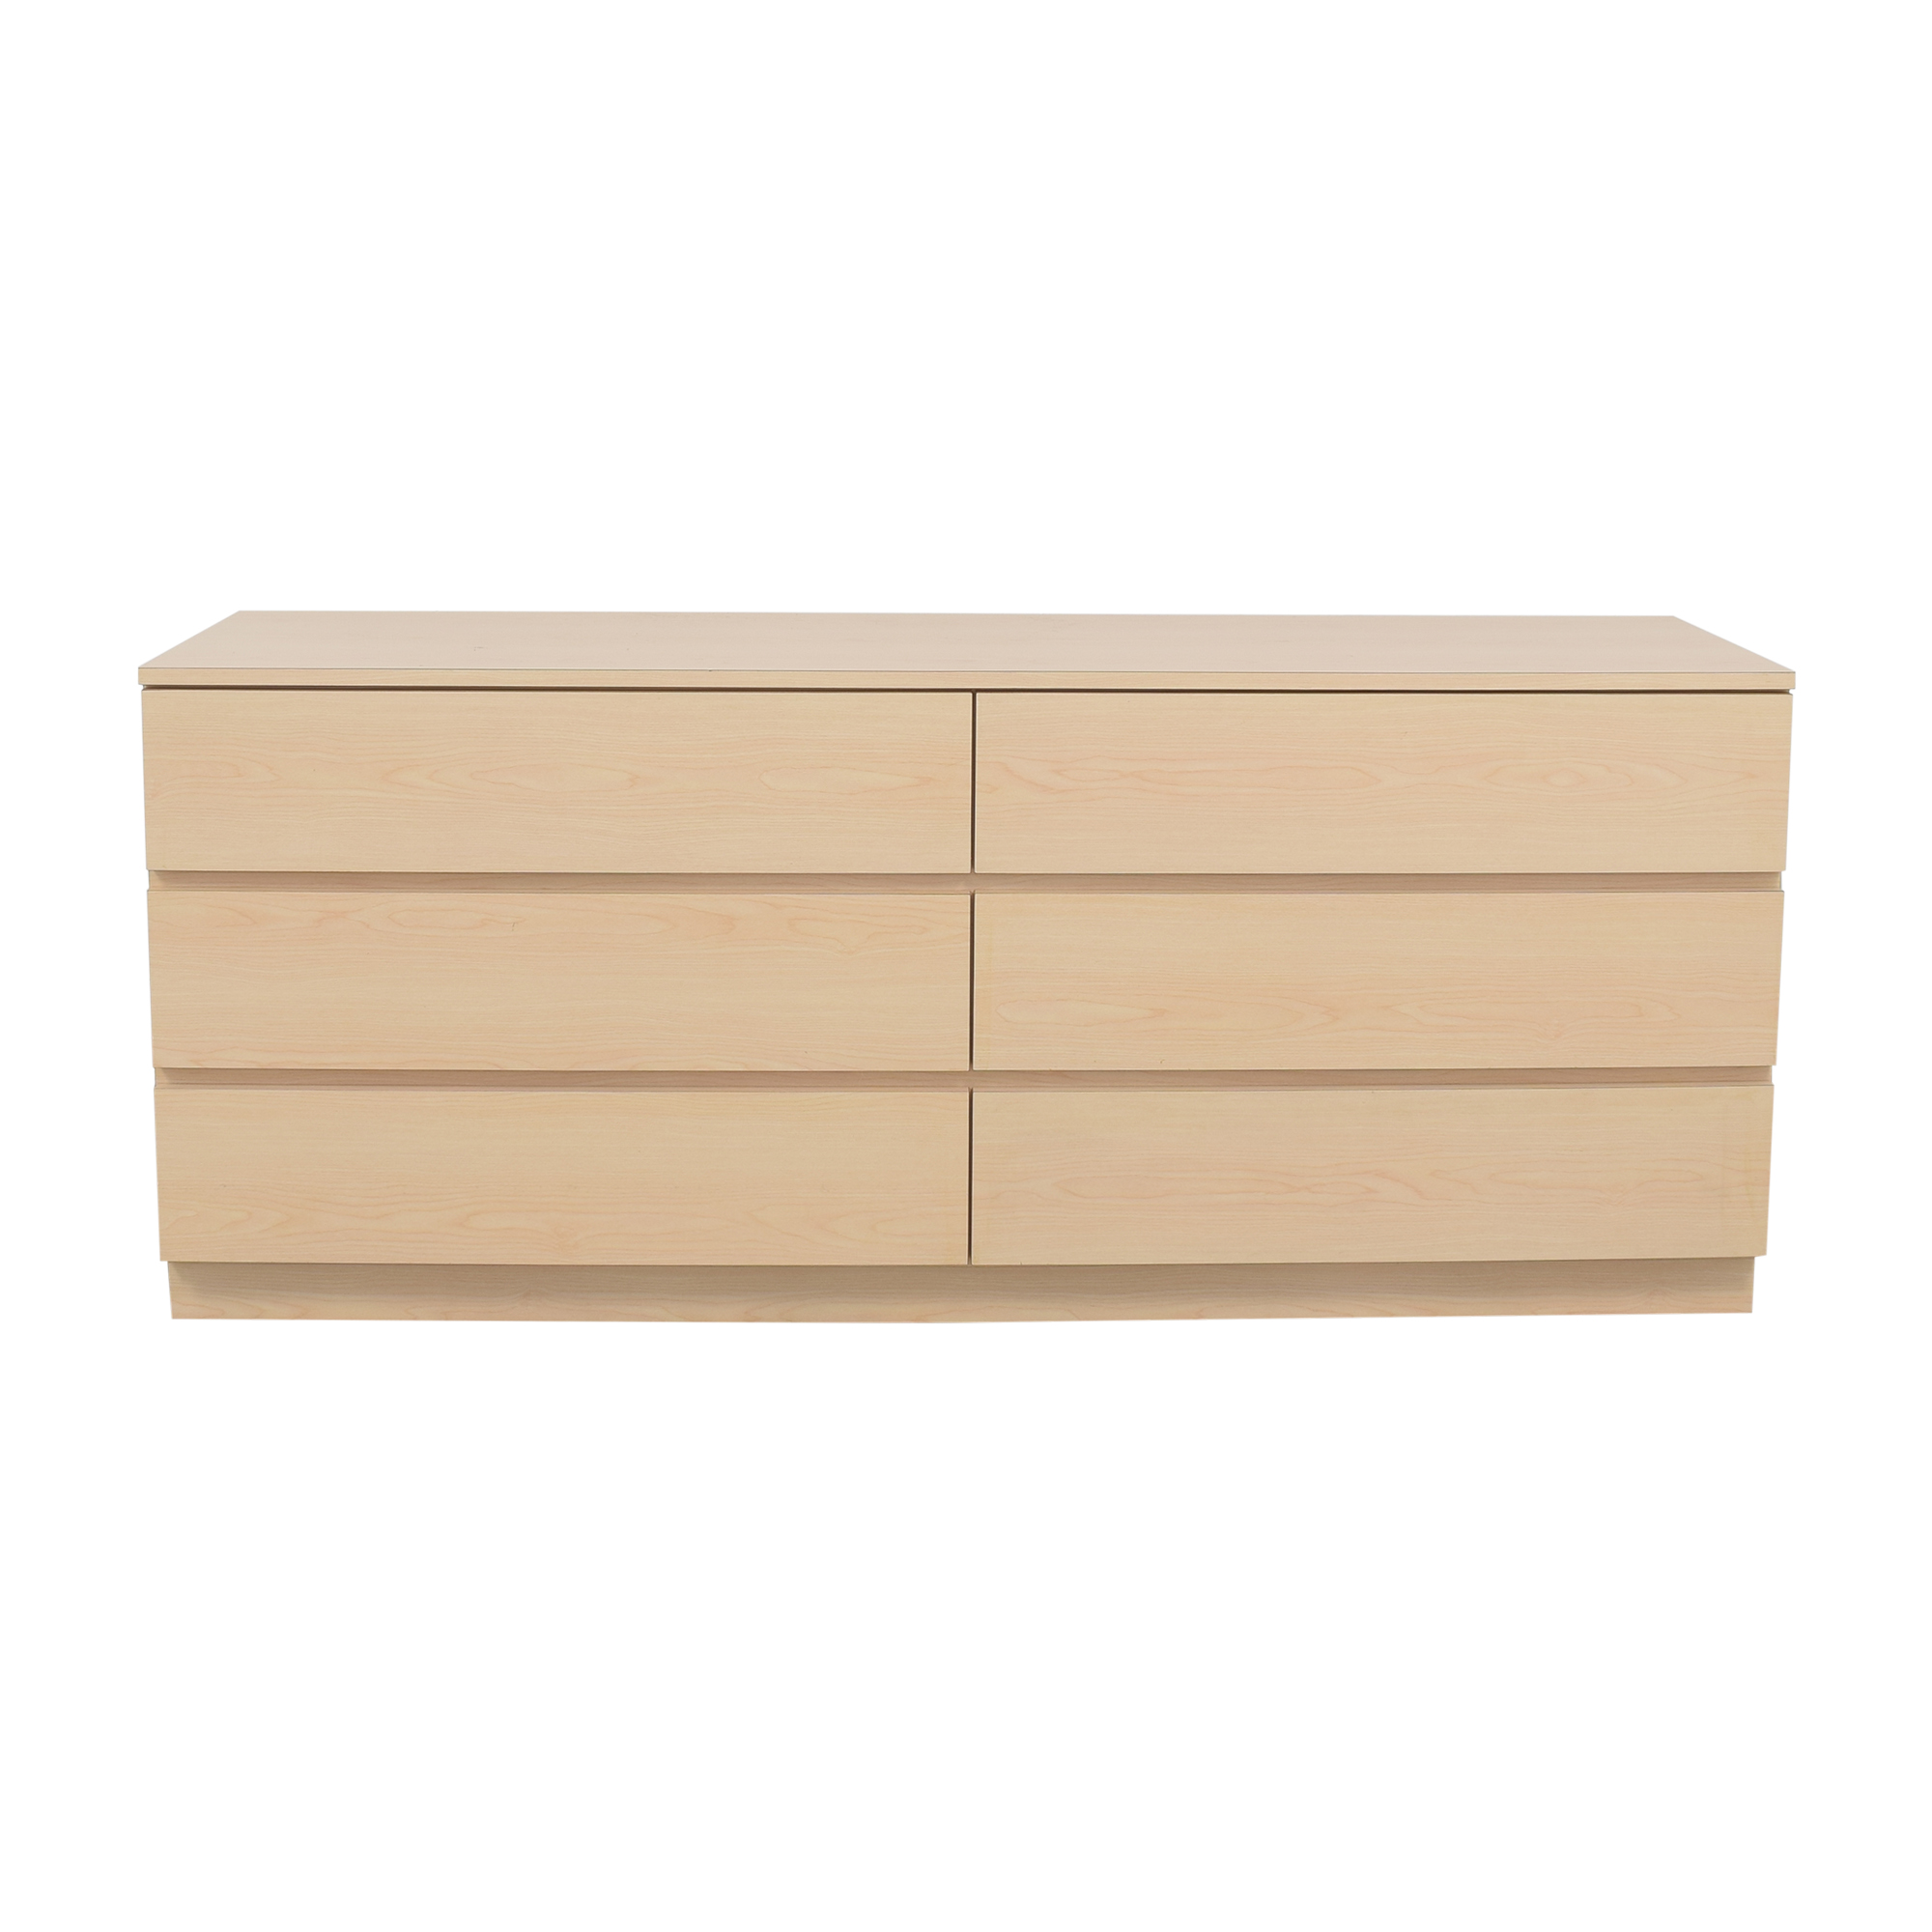 Wide Six Drawer Dresser / Dressers